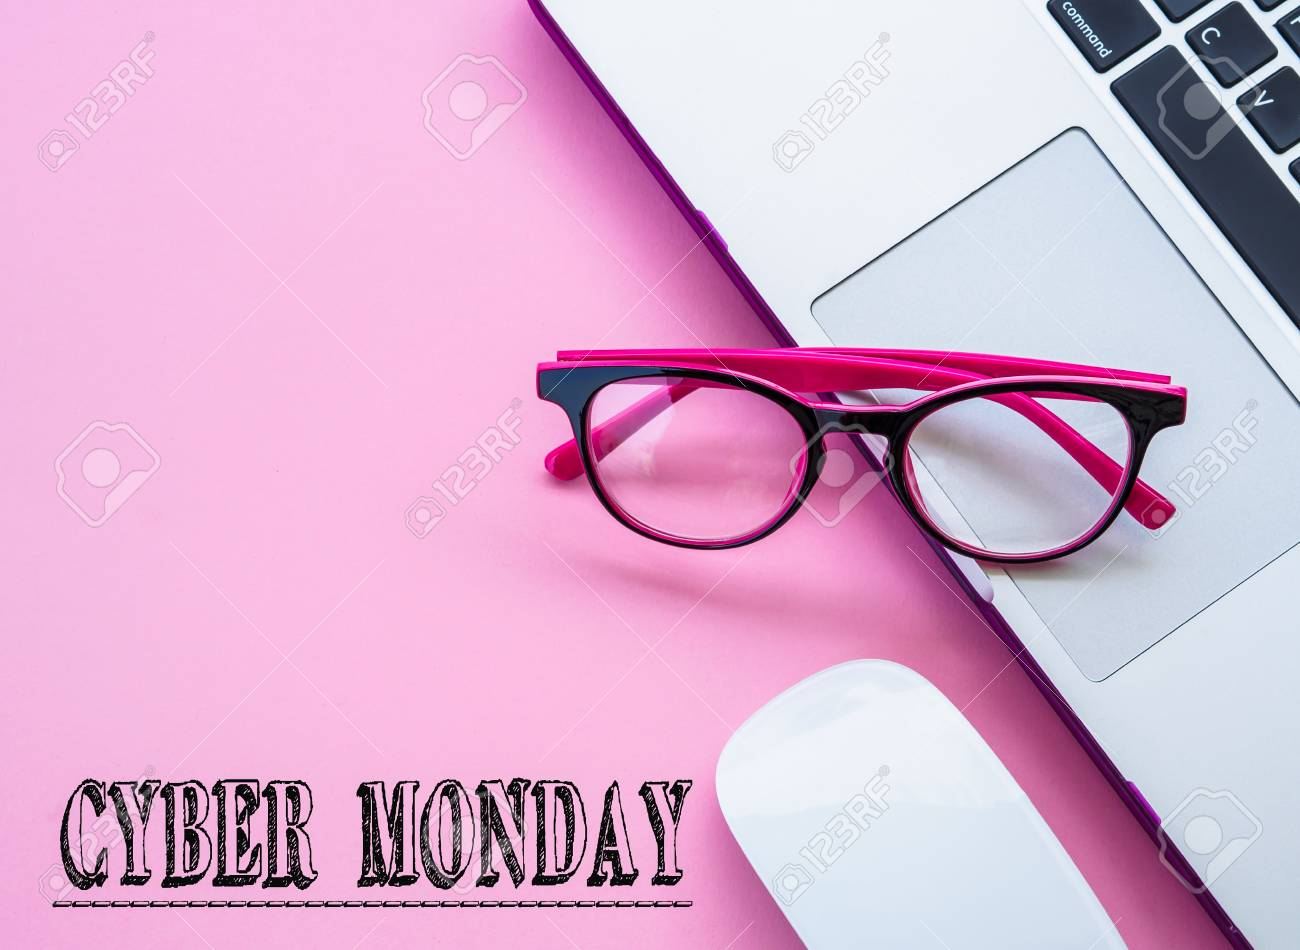 e066fc50a0 Cyber Monday Words With Pink Glasses